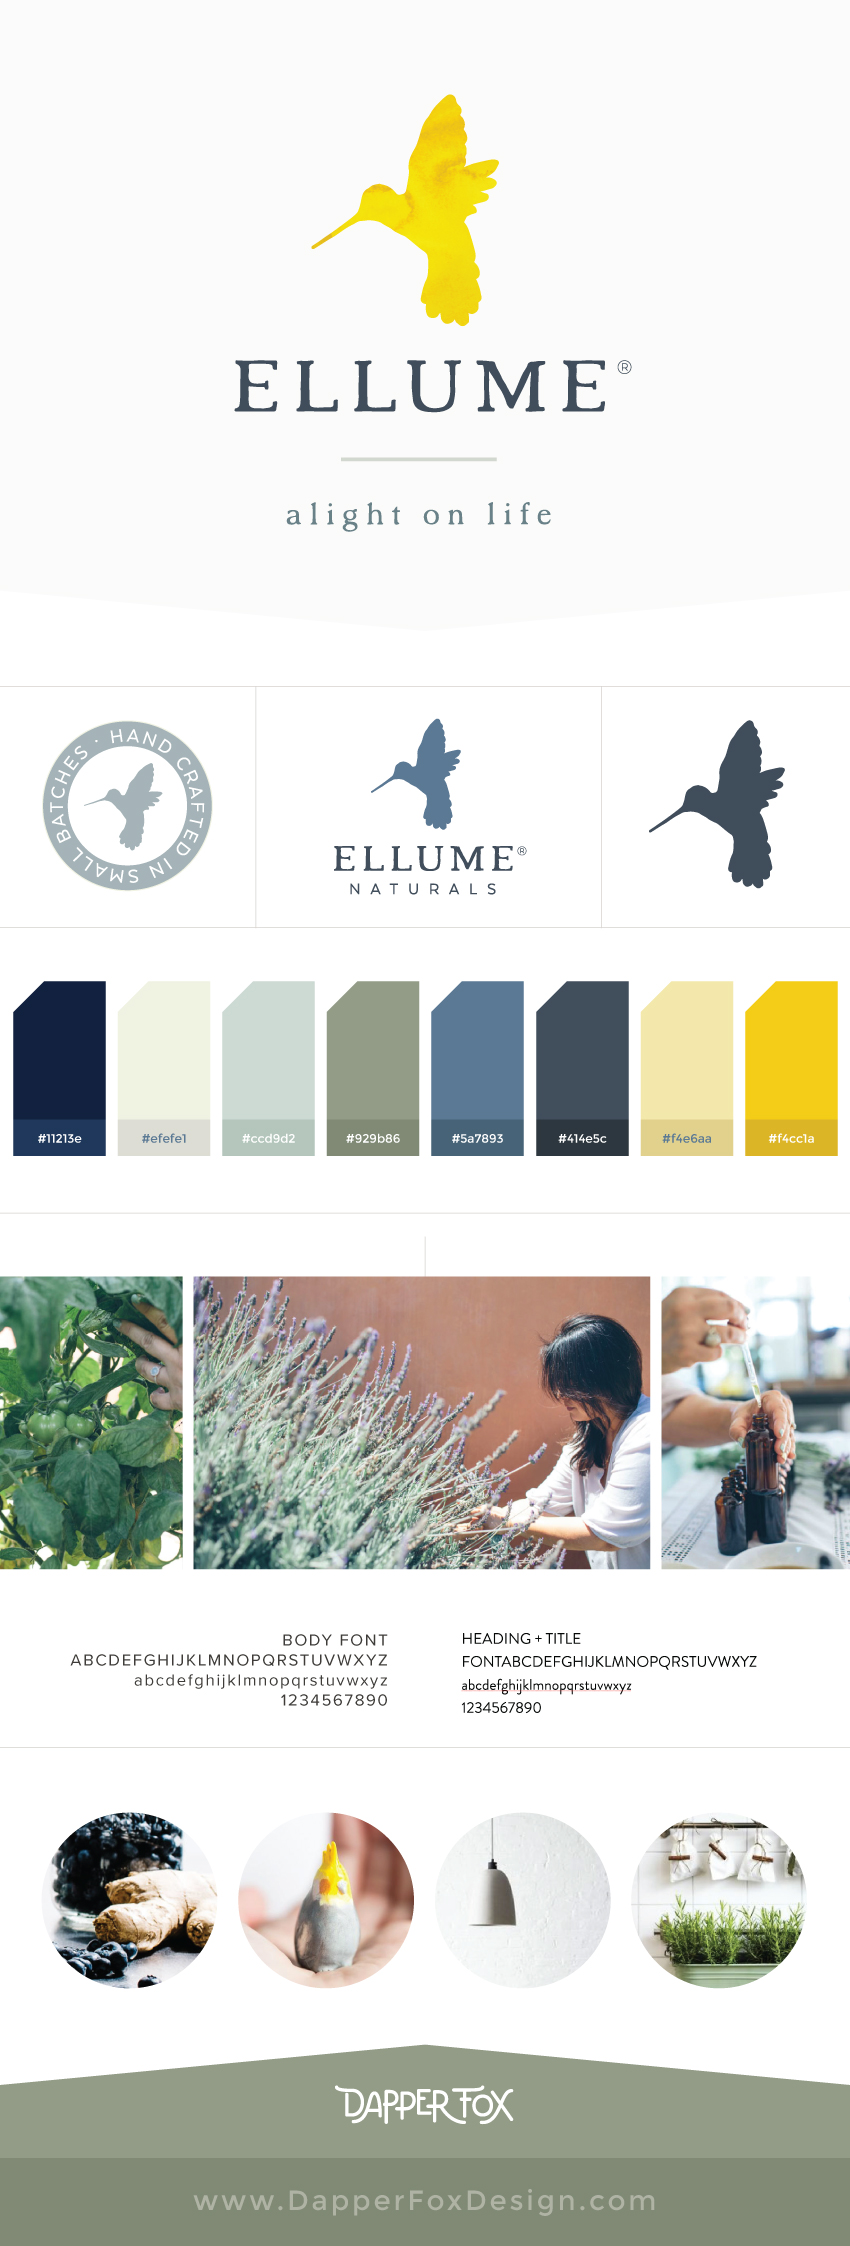 Ellume Eco Friendly Logo Design and Brand Board by Dapper Fox Design #minimal #modernlogo #bird #logo #watercolorlogo #anthropologic   #artlogo #logodesign #moodboard #yellow #blue #fresh